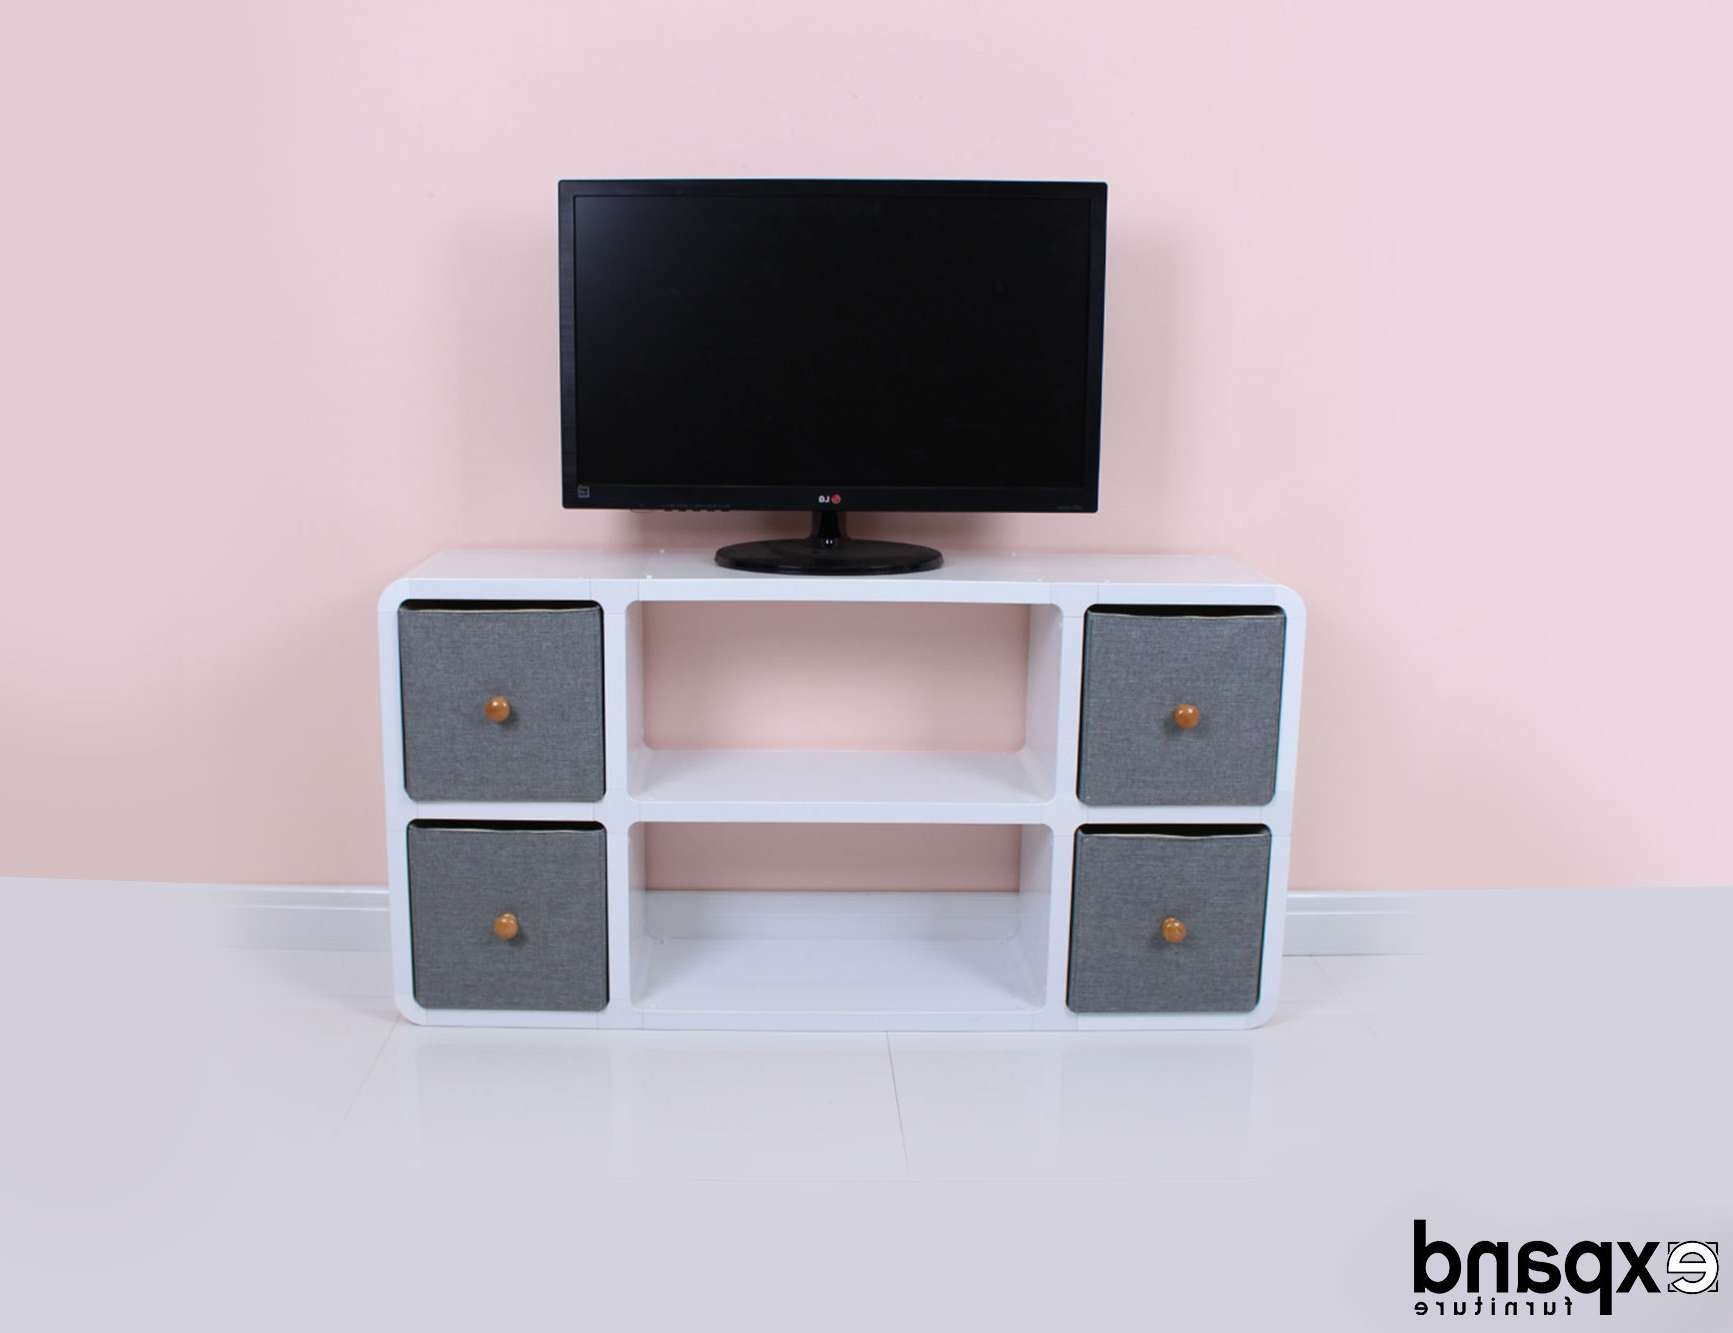 Luxury Tall Thin Tv Stand 23 For Simple Home Decoration Ideas With Intended For Tall Skinny Tv Stands (View 5 of 15)